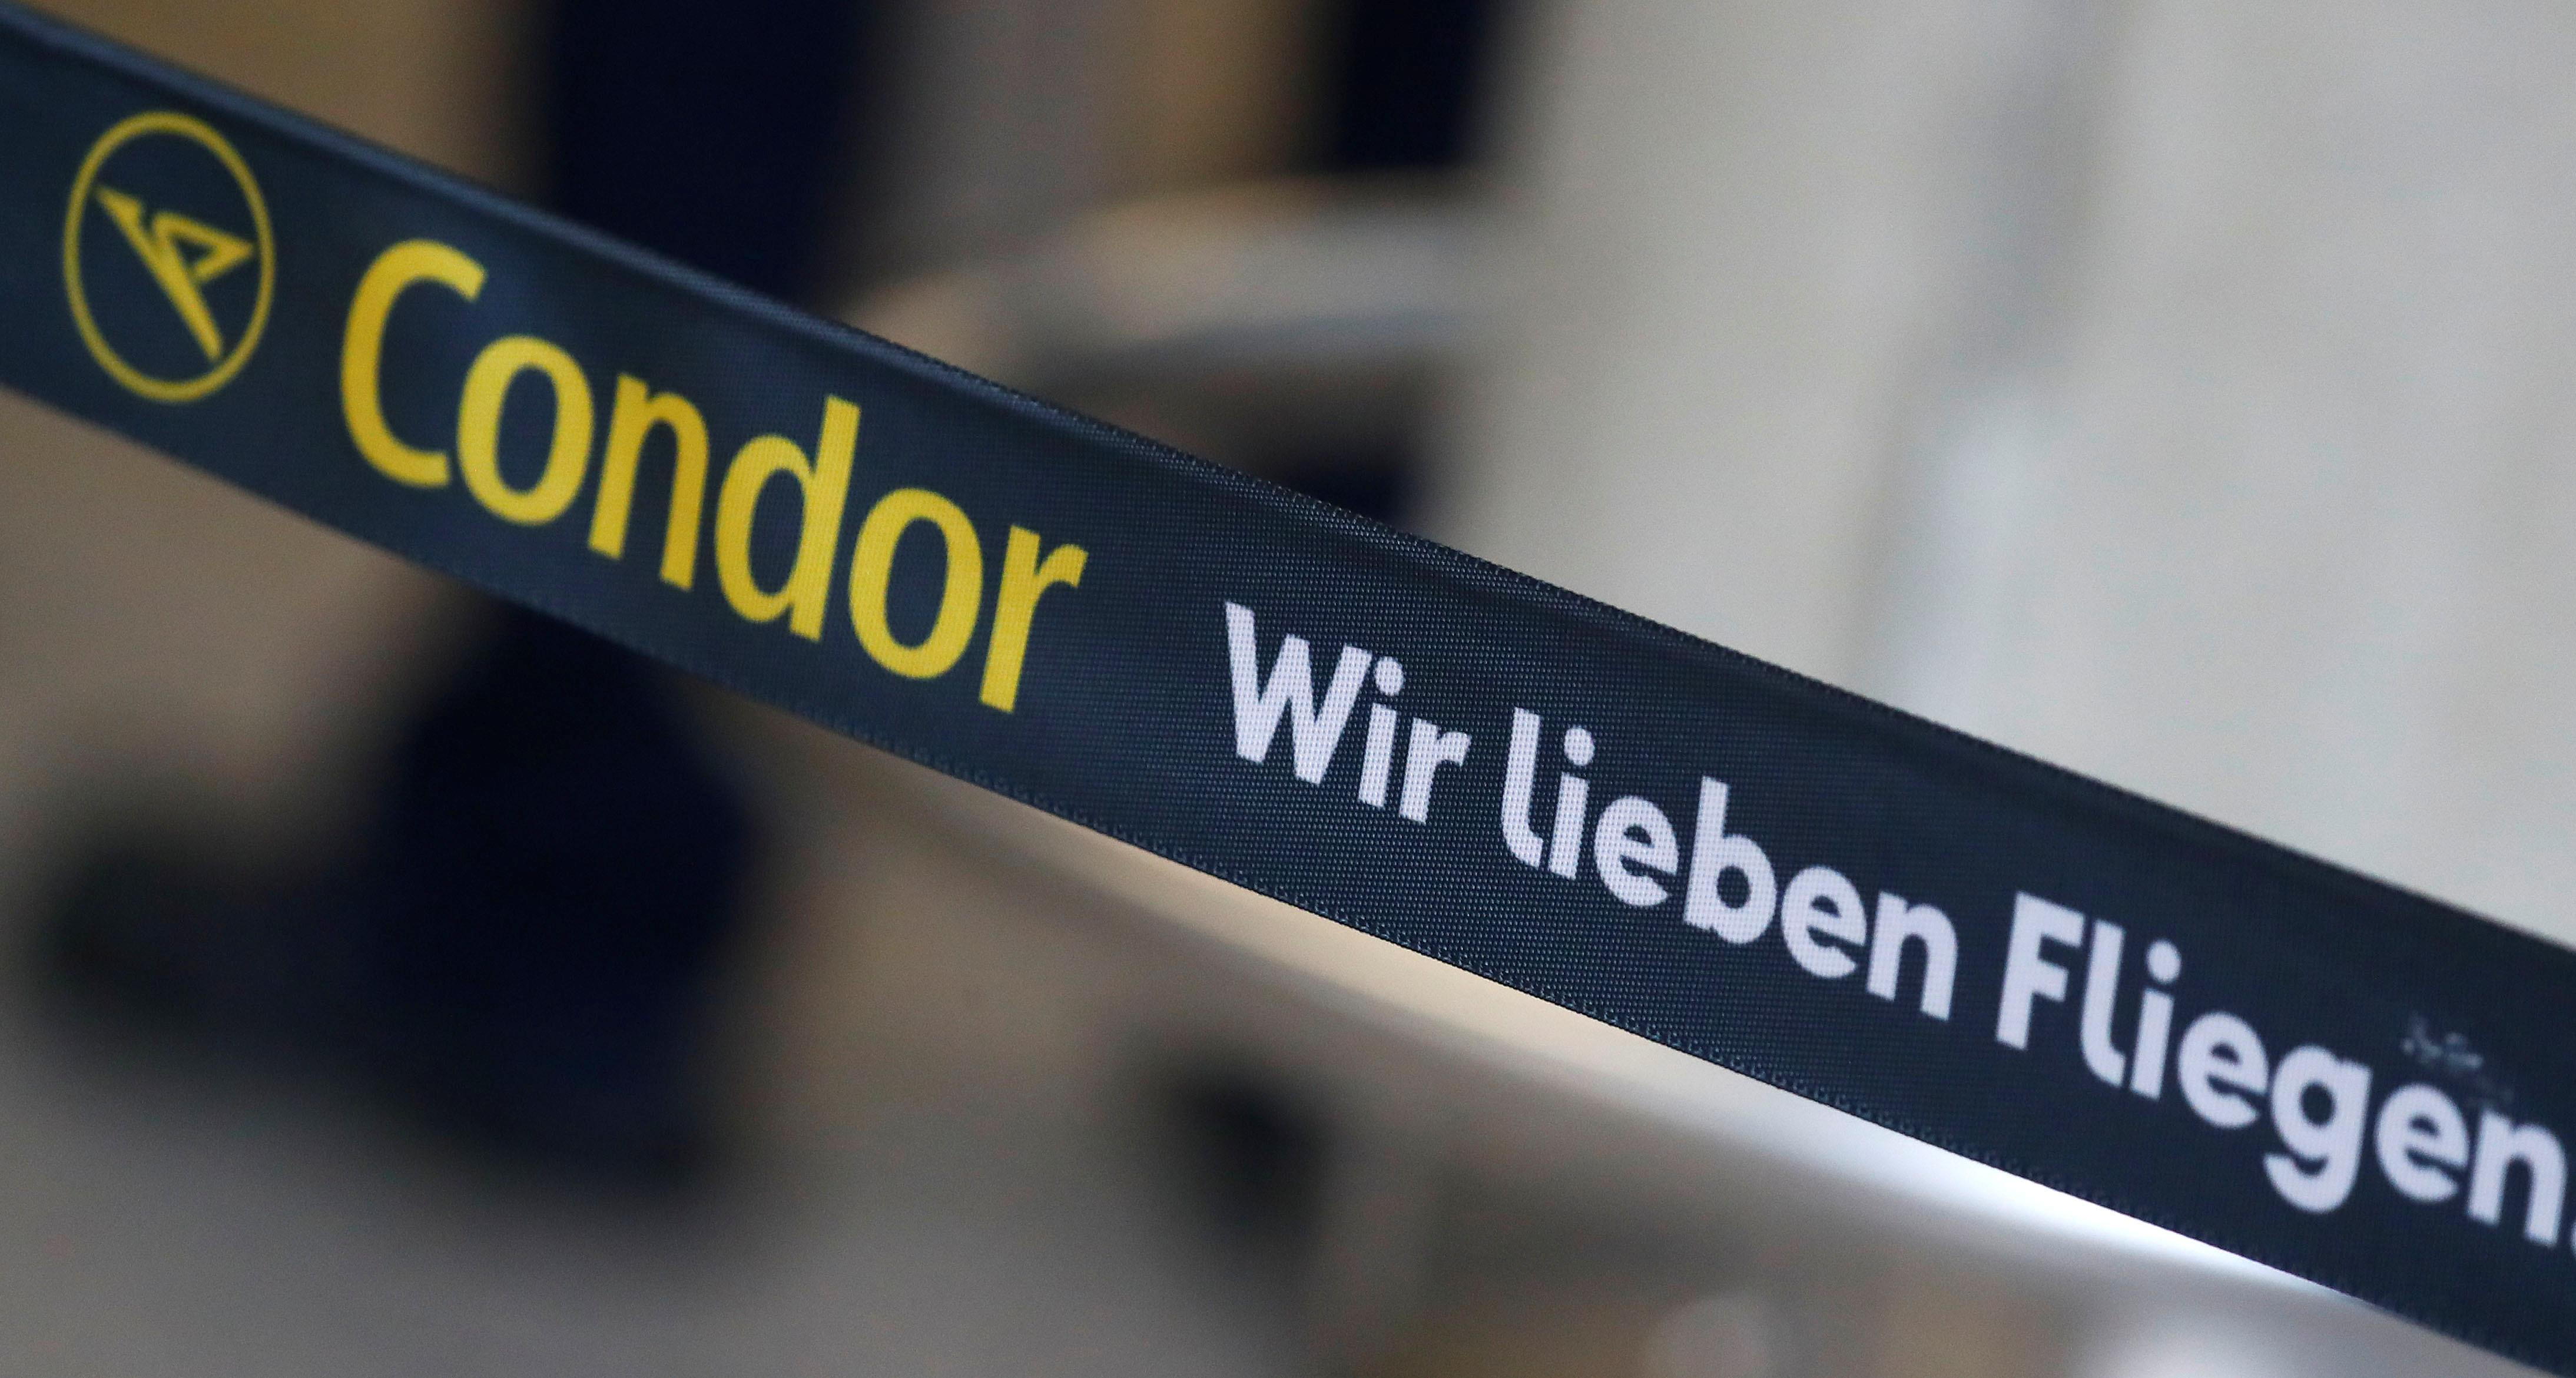 Germany's Condor sets ambitious margin target to court buyers